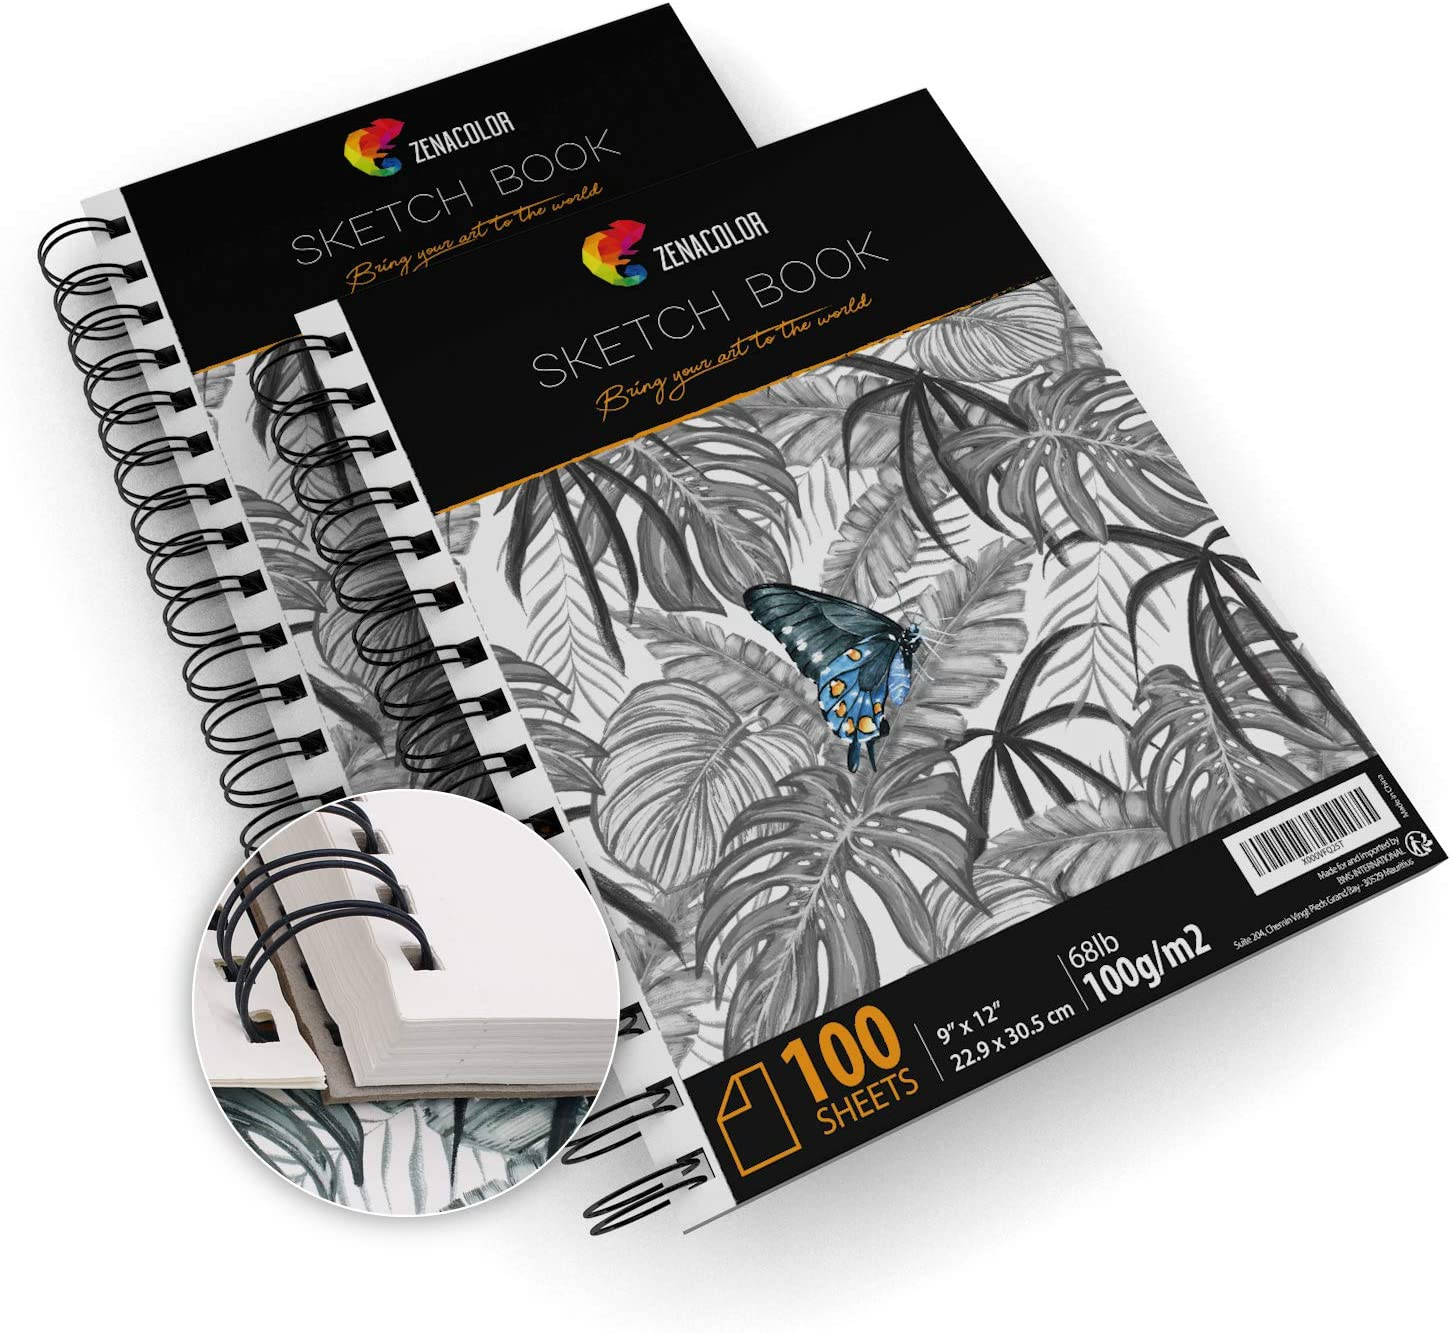 """200 Sheets, Professional Sketch Book Set, 9""""x12"""" with Spiral Bound - 2 x Sketch Pad with White Drawing Paper (100 g) - Blank Artist Sketchbook with Hardback Cover, Easy Tear Out for Drawing Pad"""